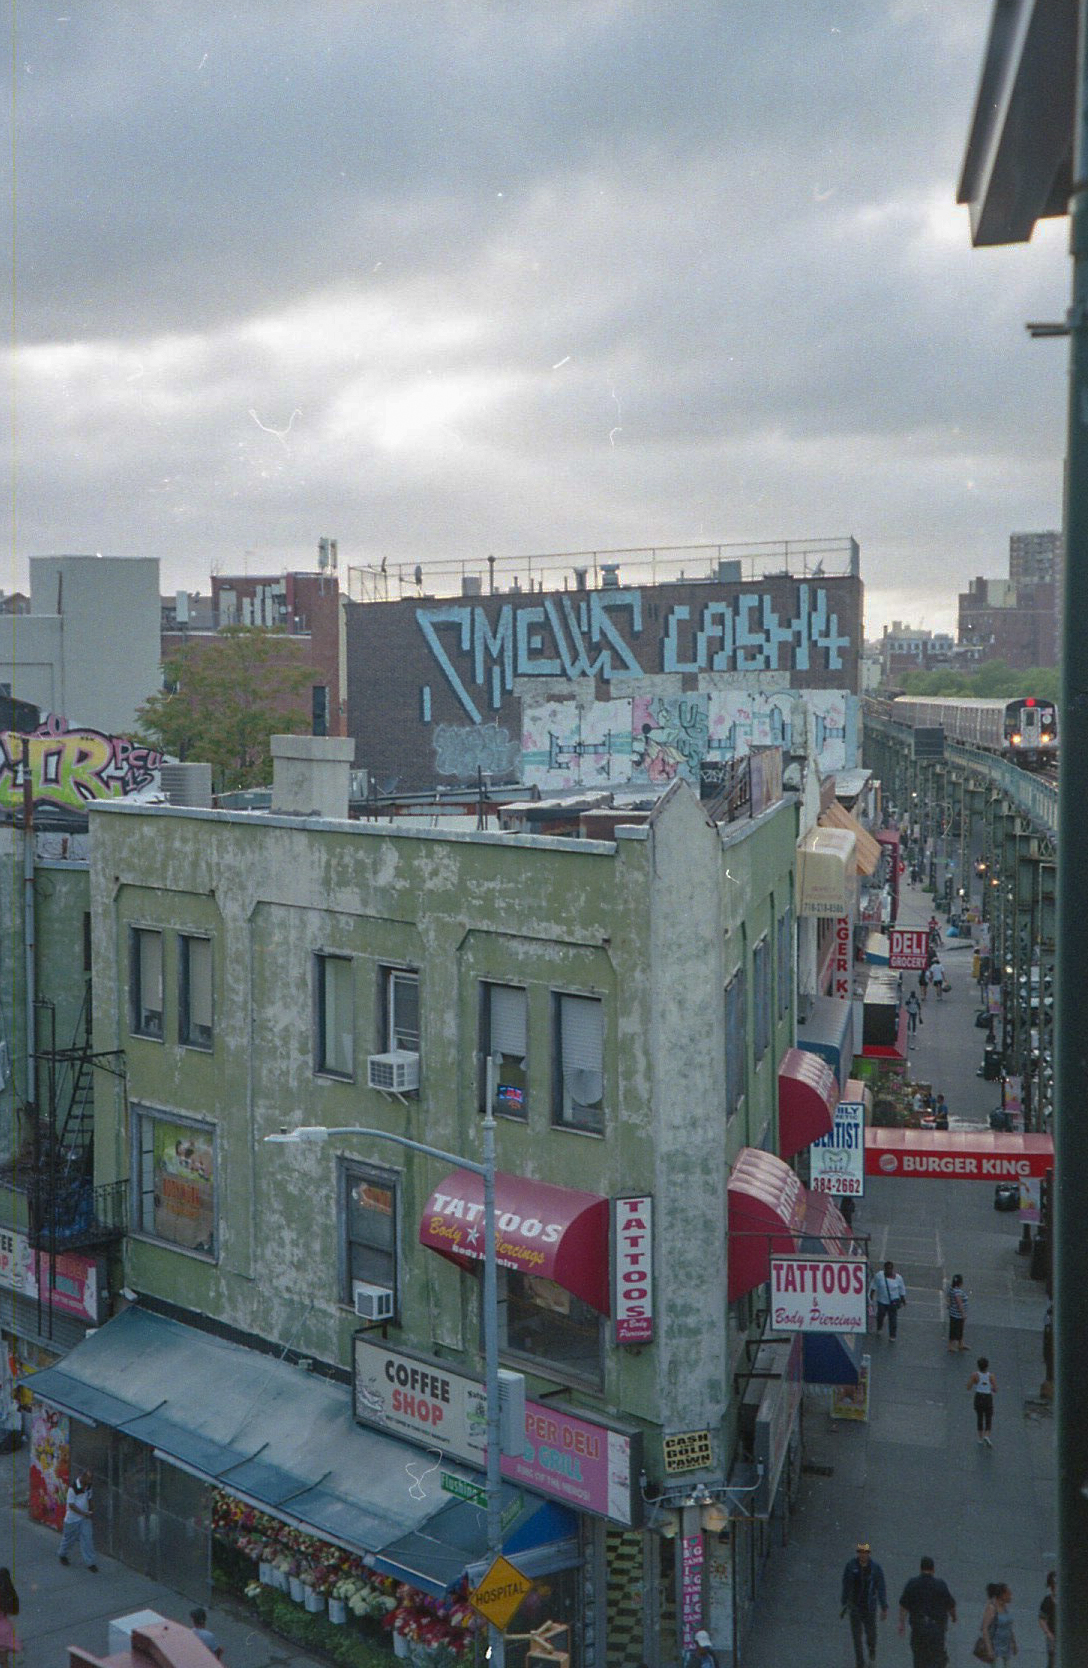 Broadway & Myrtle on 35mm Film - click photo to see more street art and graffiti